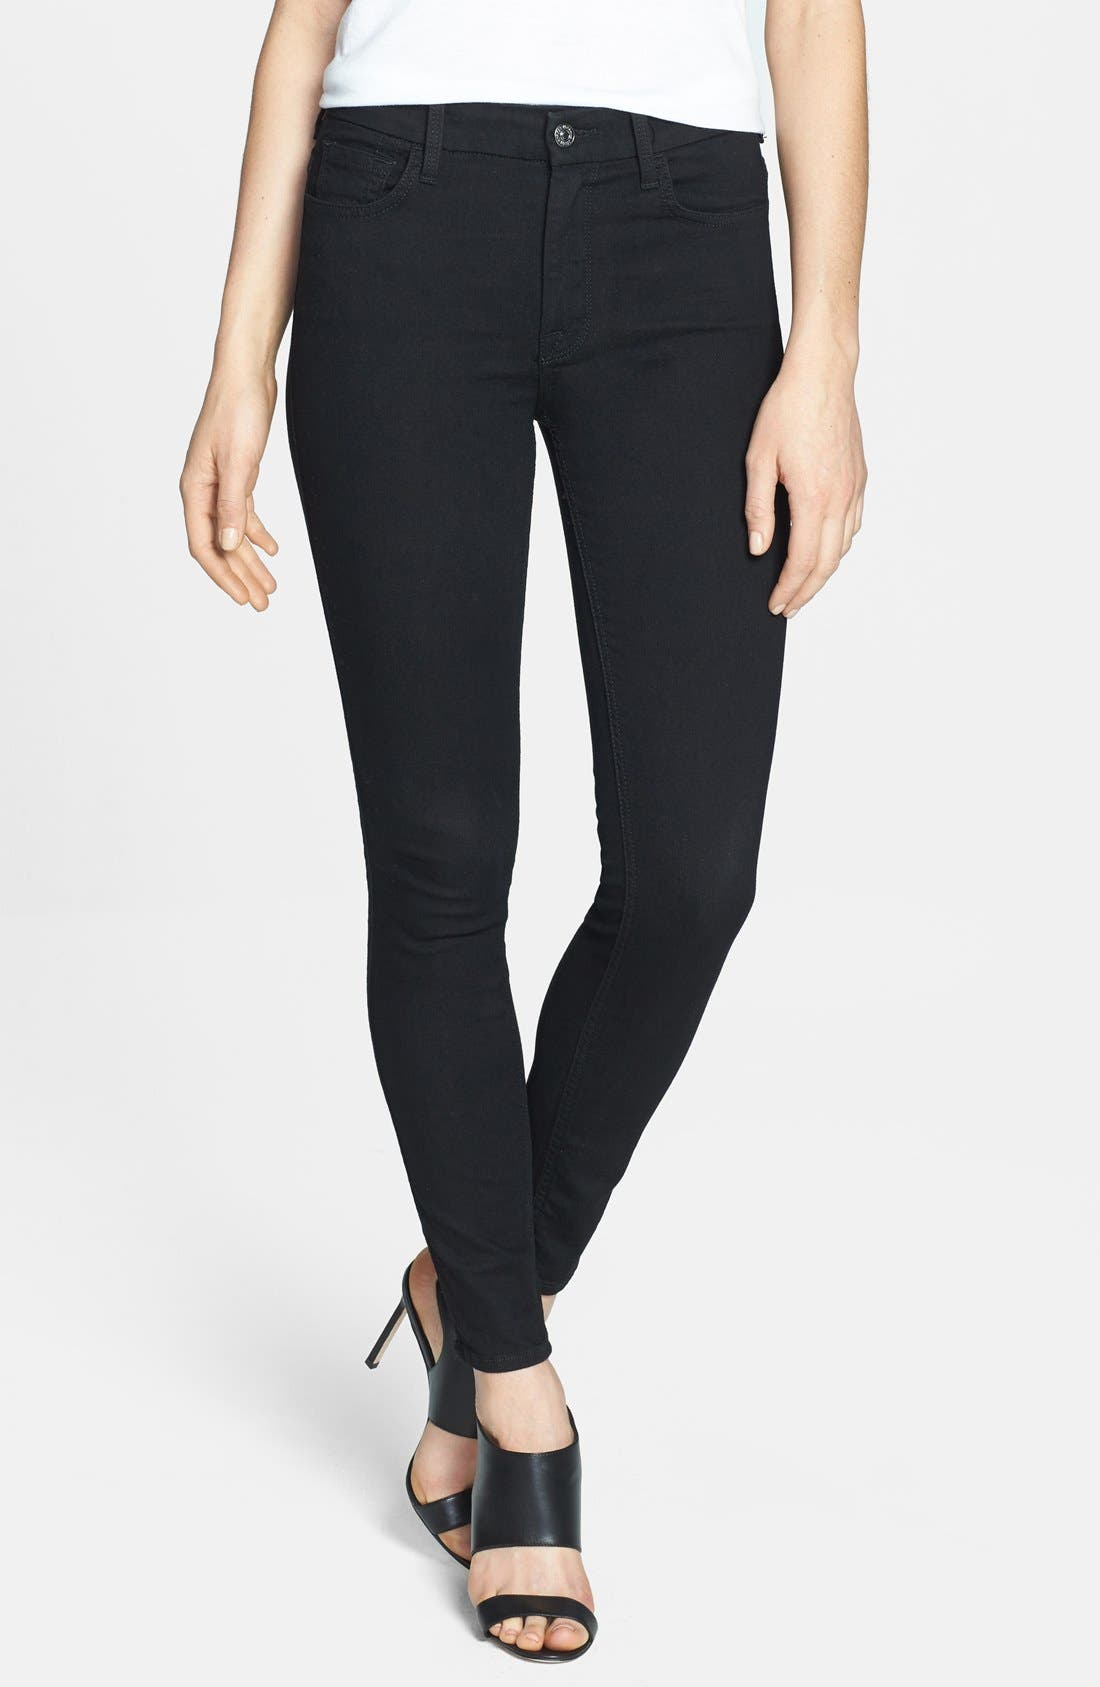 Main Image - 7 For All Mankind® High Rise Ankle Skinny Jeans (Elasticity Black)